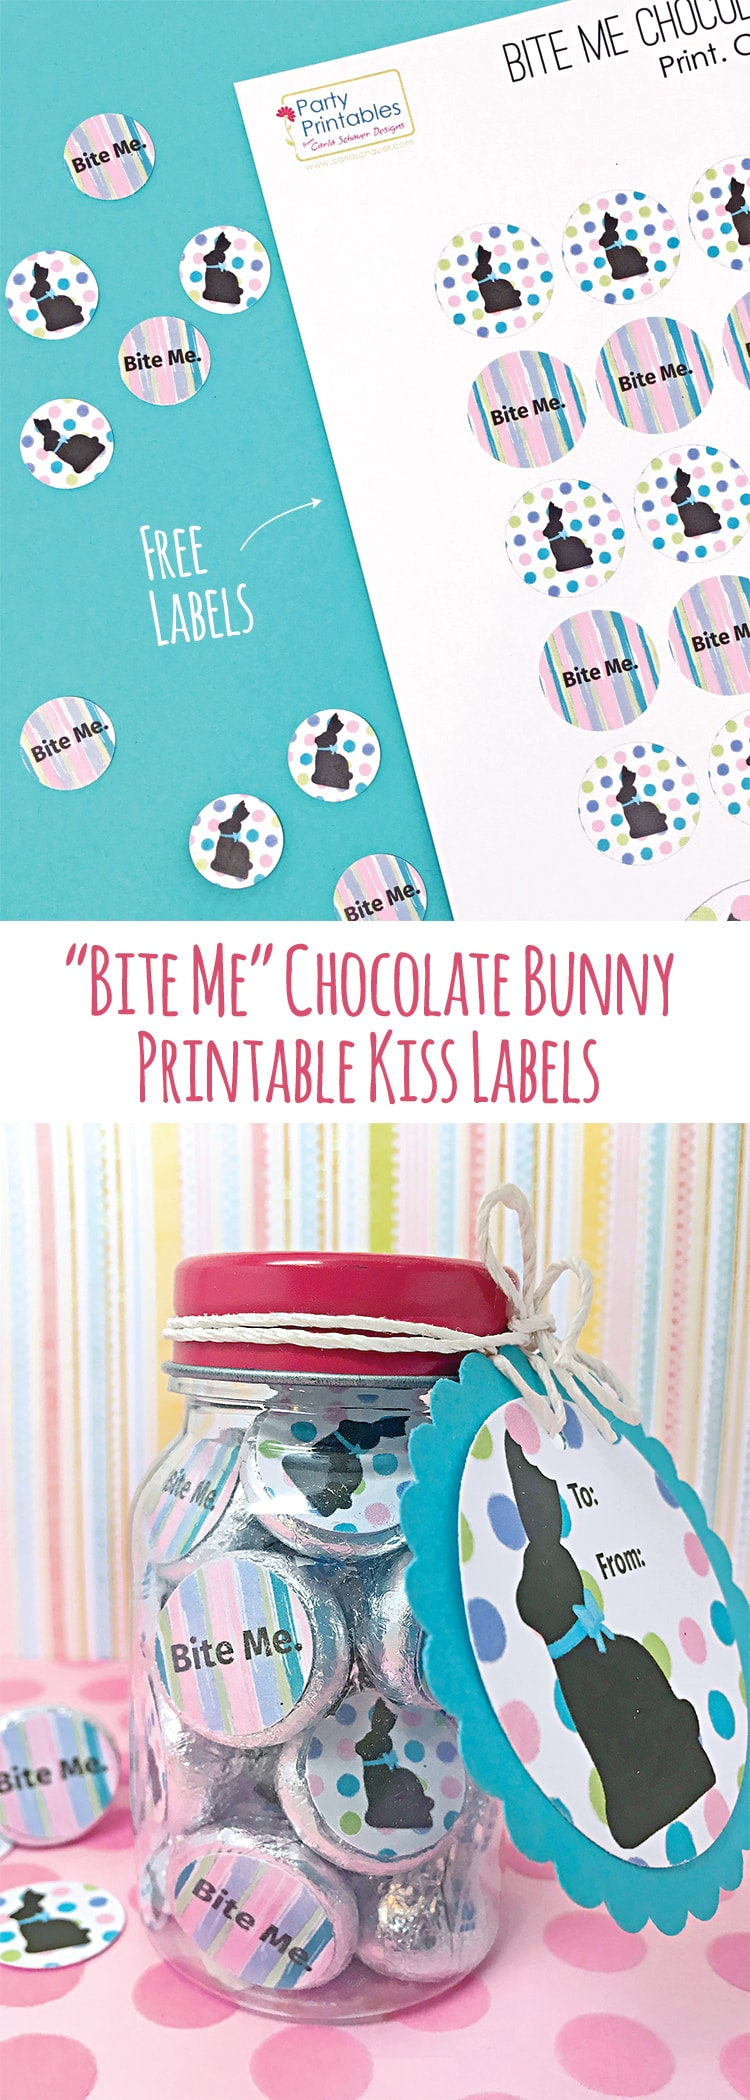 "Funny Chocolate Bunny Printables. ""Bite Me"" candy labels would be hilarious for my BFF! free labels from carlaschauer.com"